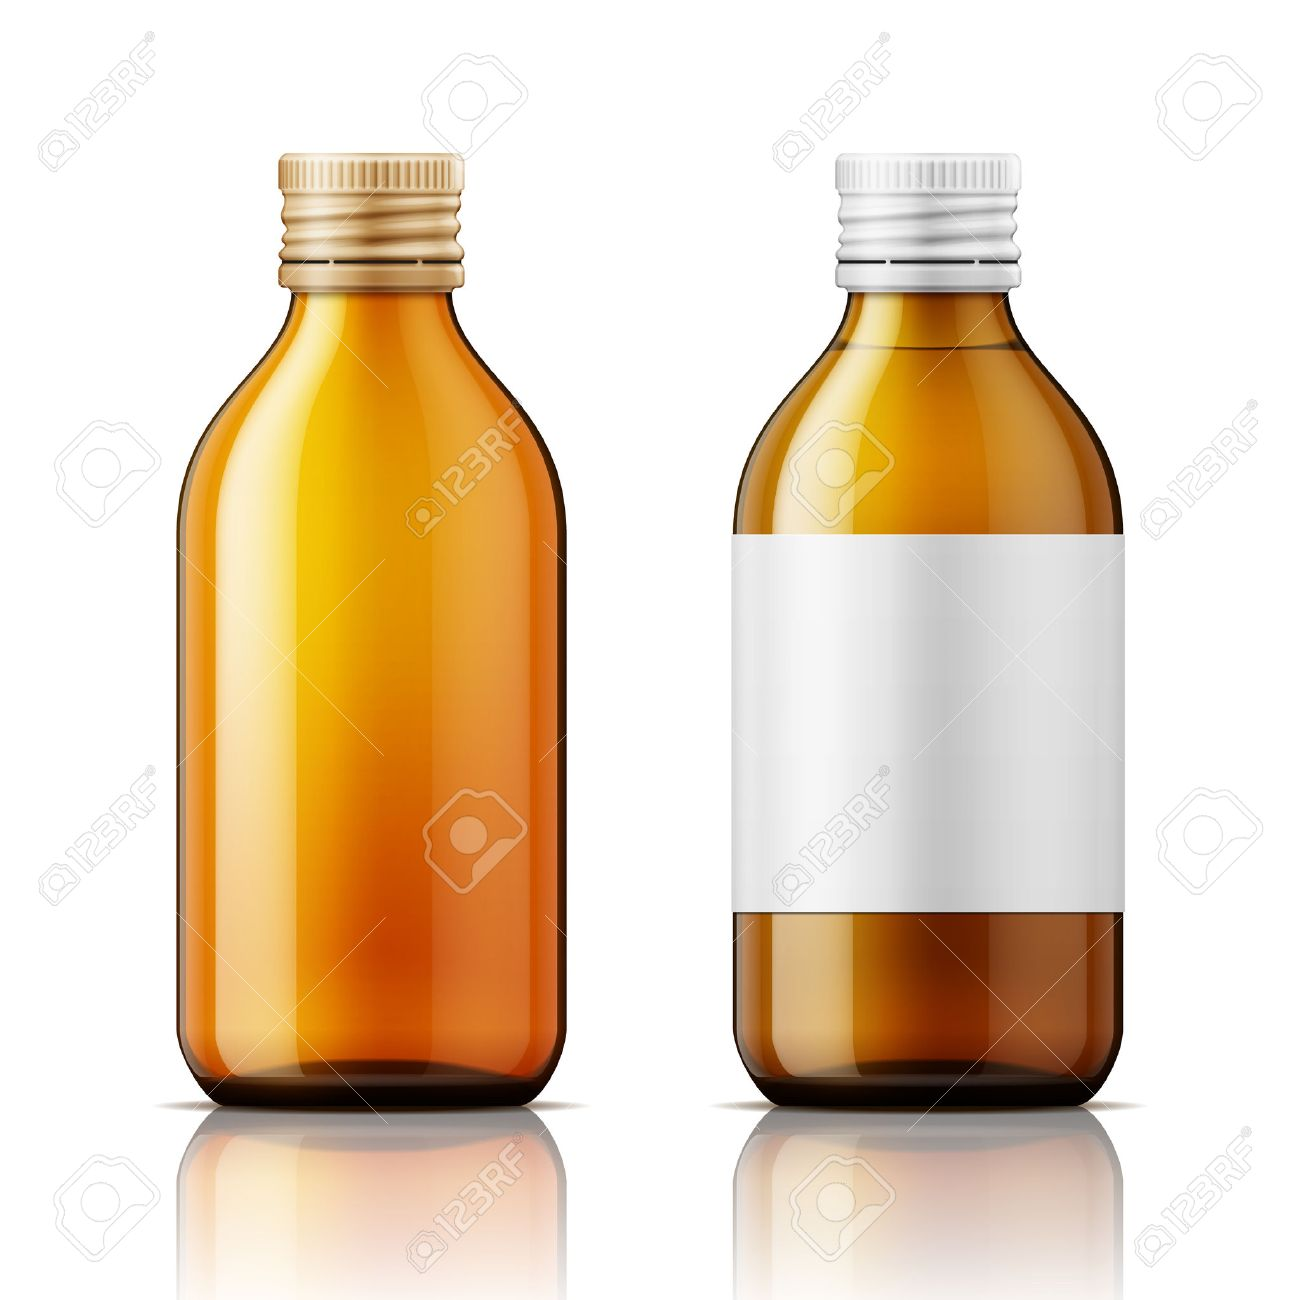 Template of brown glass bottle with screw cap, filled with liquid and empty. For medicine, syrup, pills, tabs. Packaging collection. Vector illustration. - 47208740